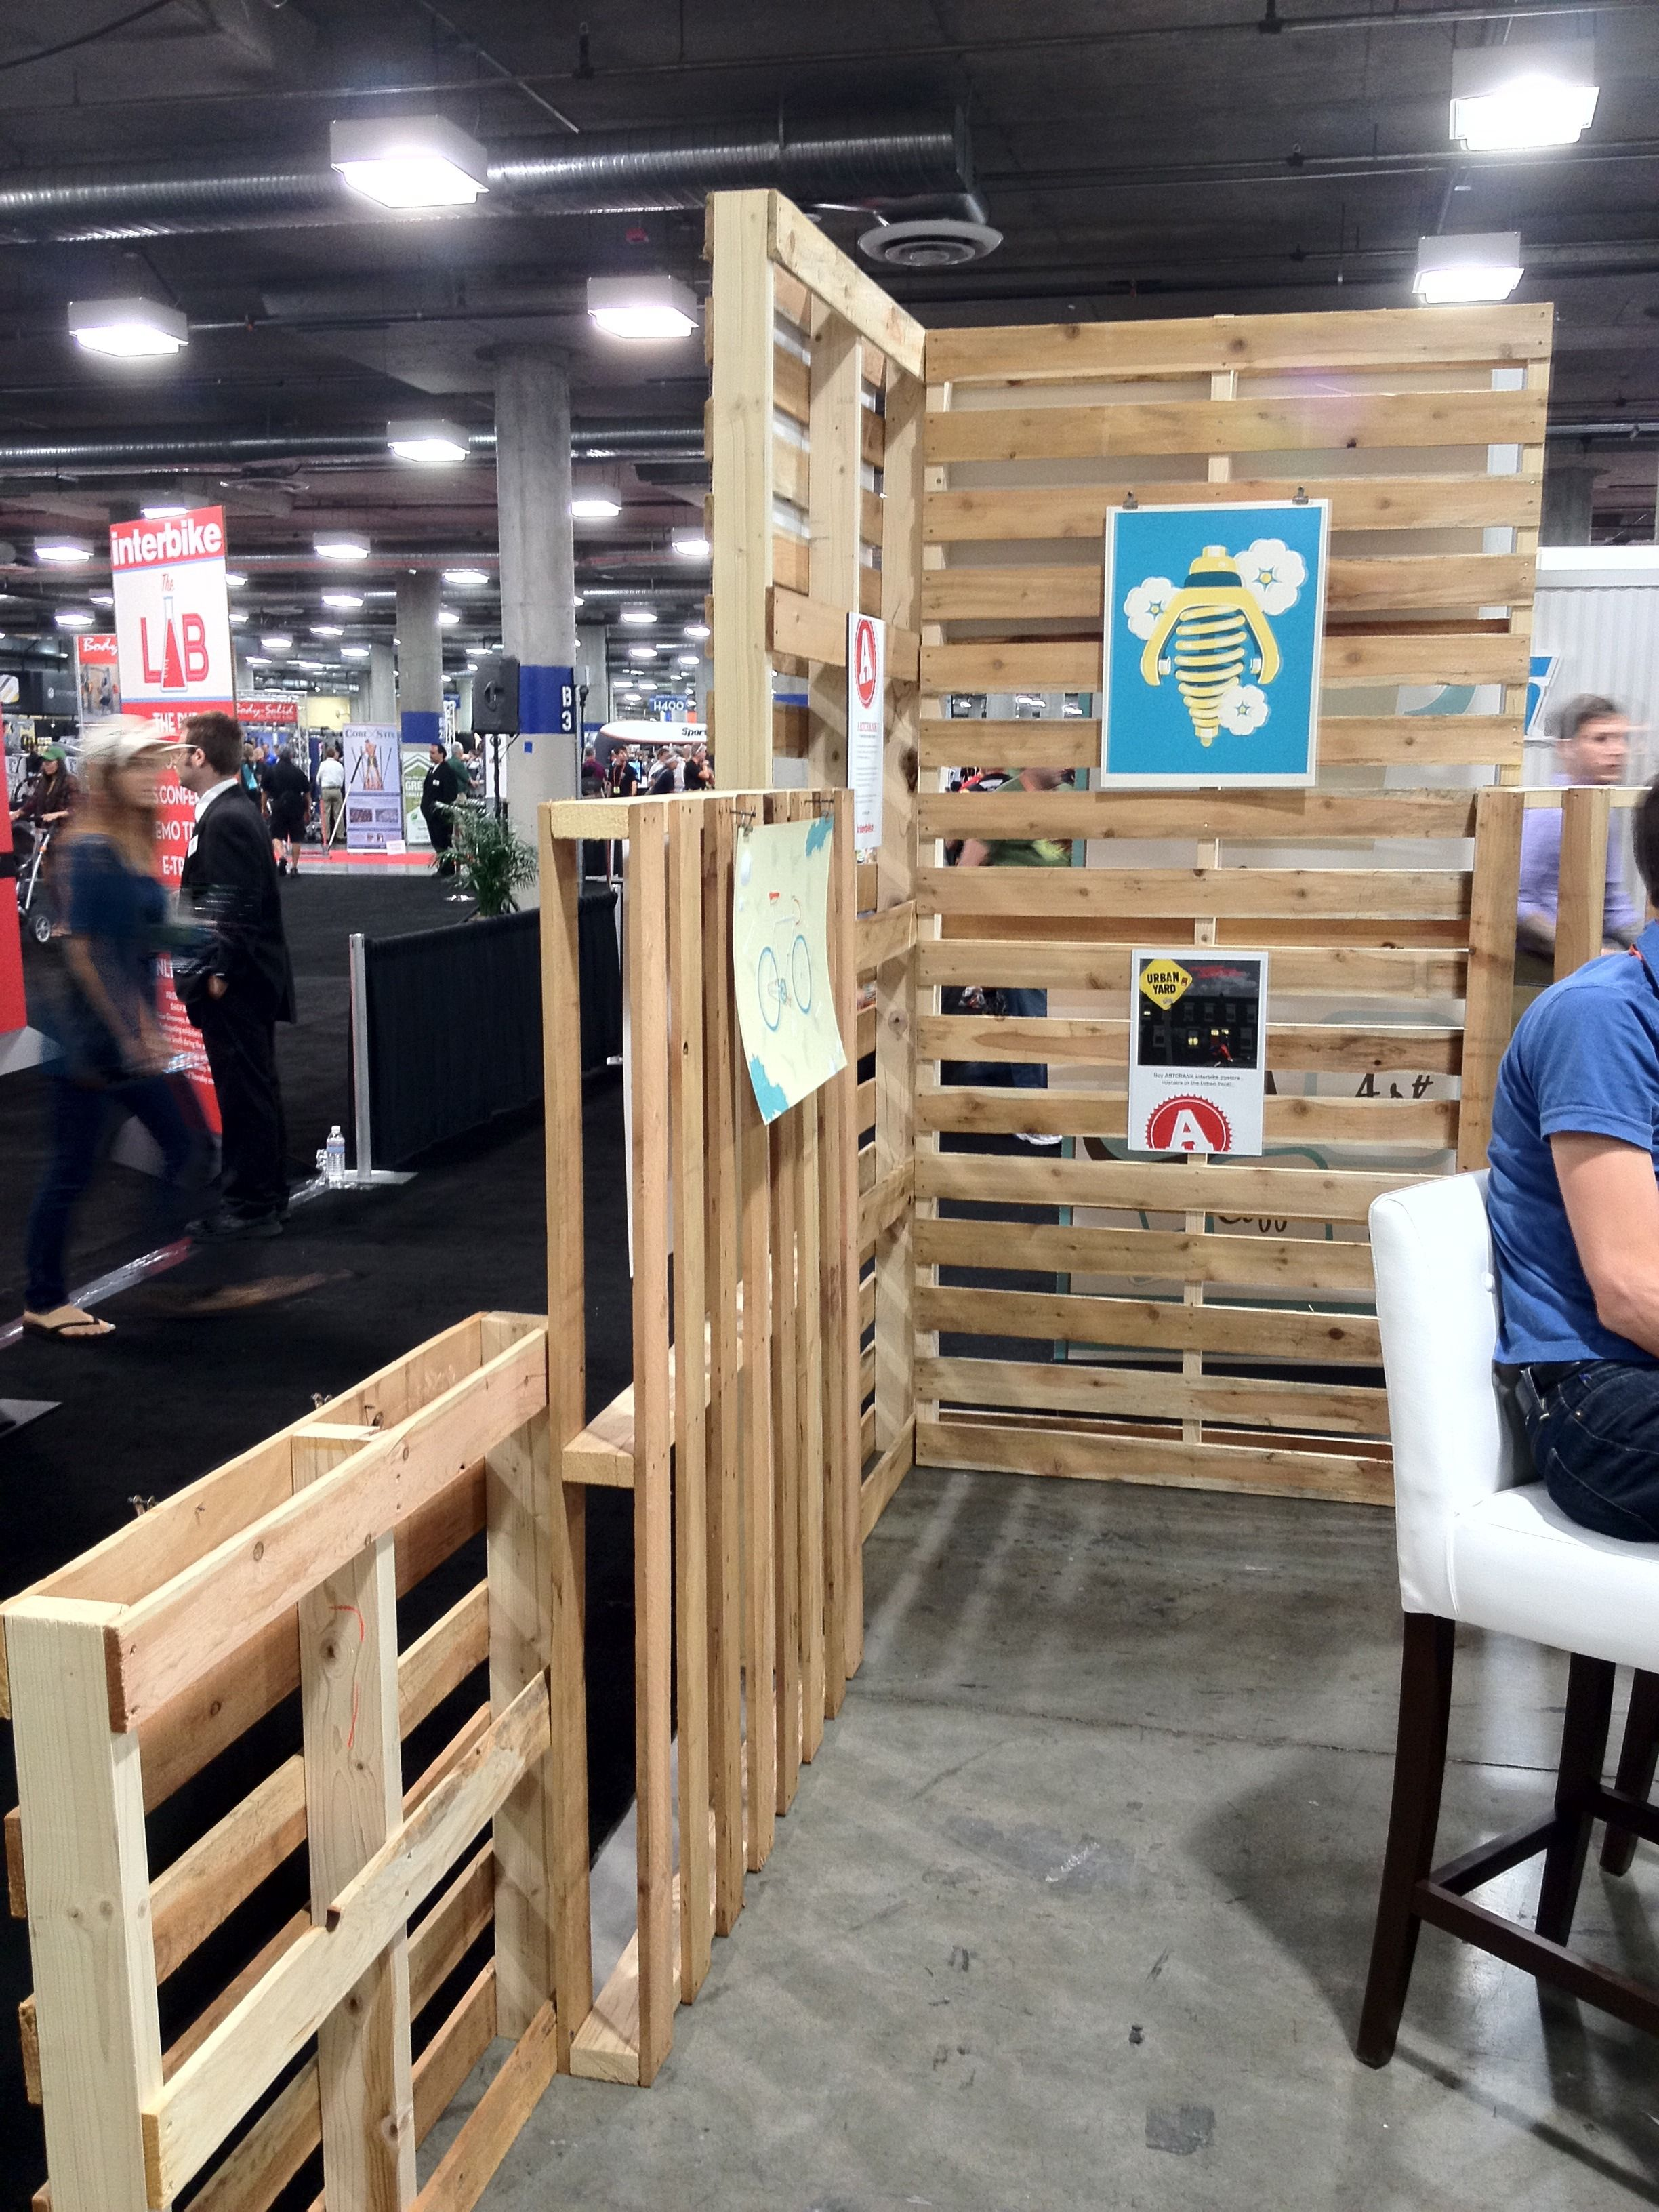 Wood Trade Show Booth : Image result for pallet wood trade show booths farm country theme